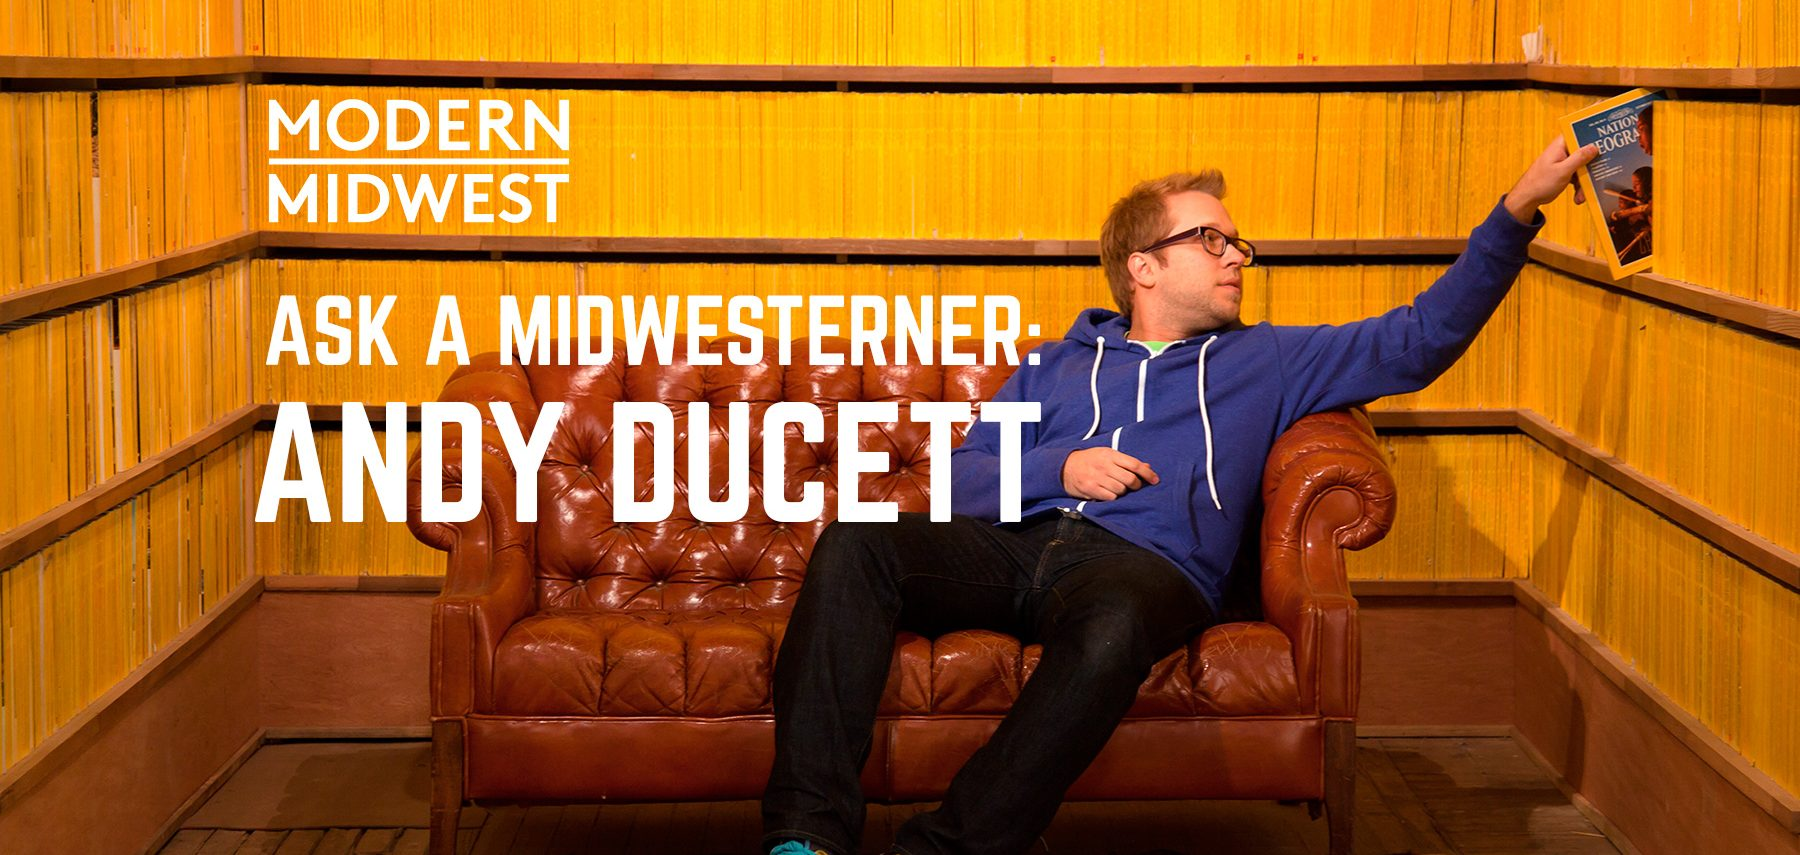 Interview with Modern Midwest